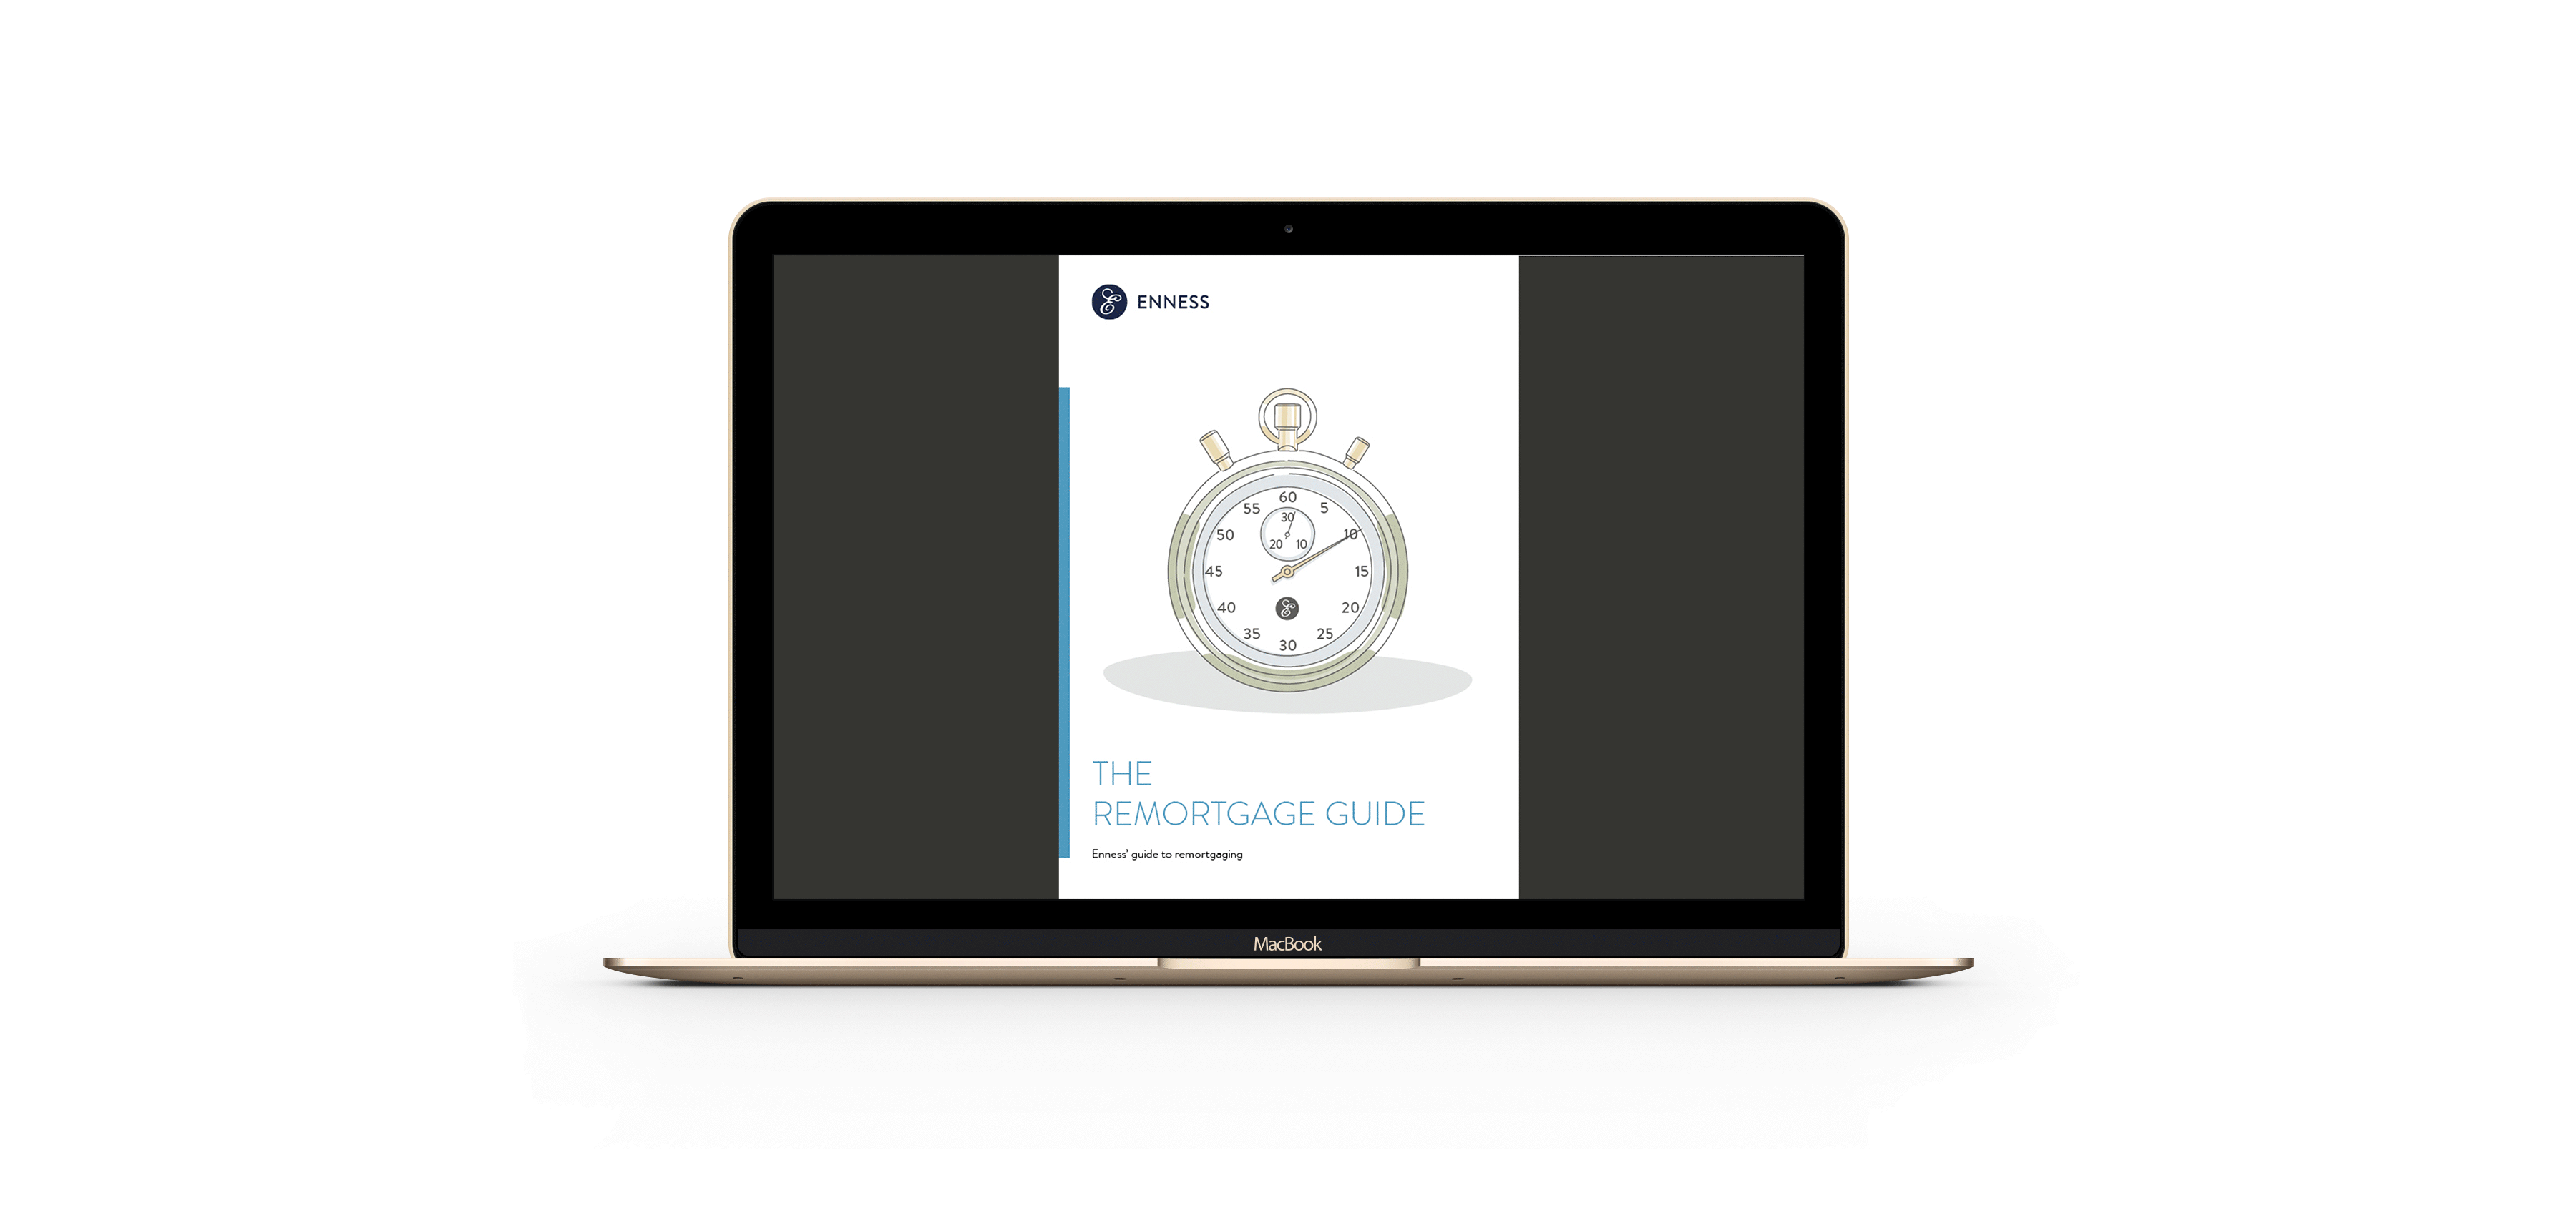 Remortgage_Guide_ibook.png